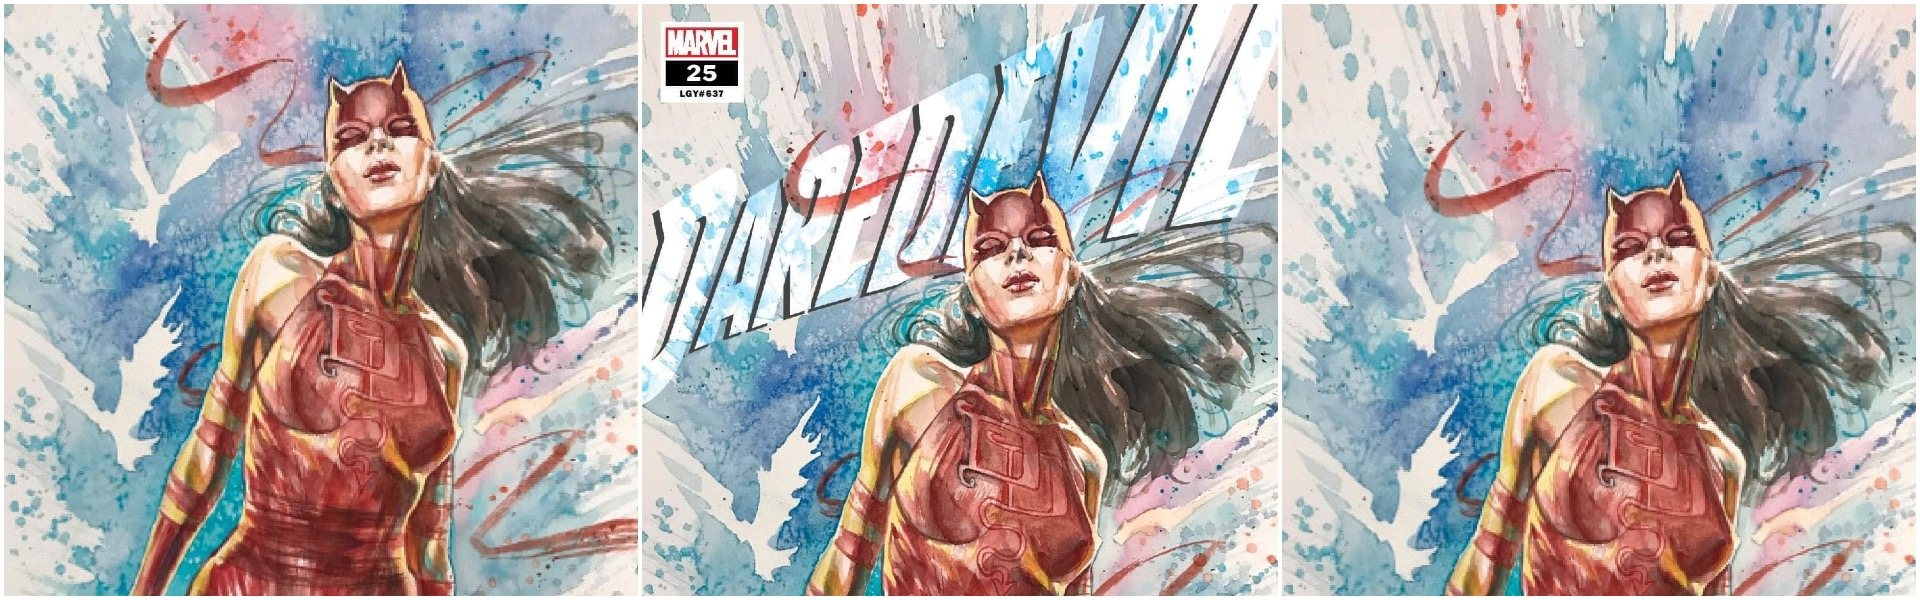 Daredevil #25 David Mack 2nd Print Exclusives